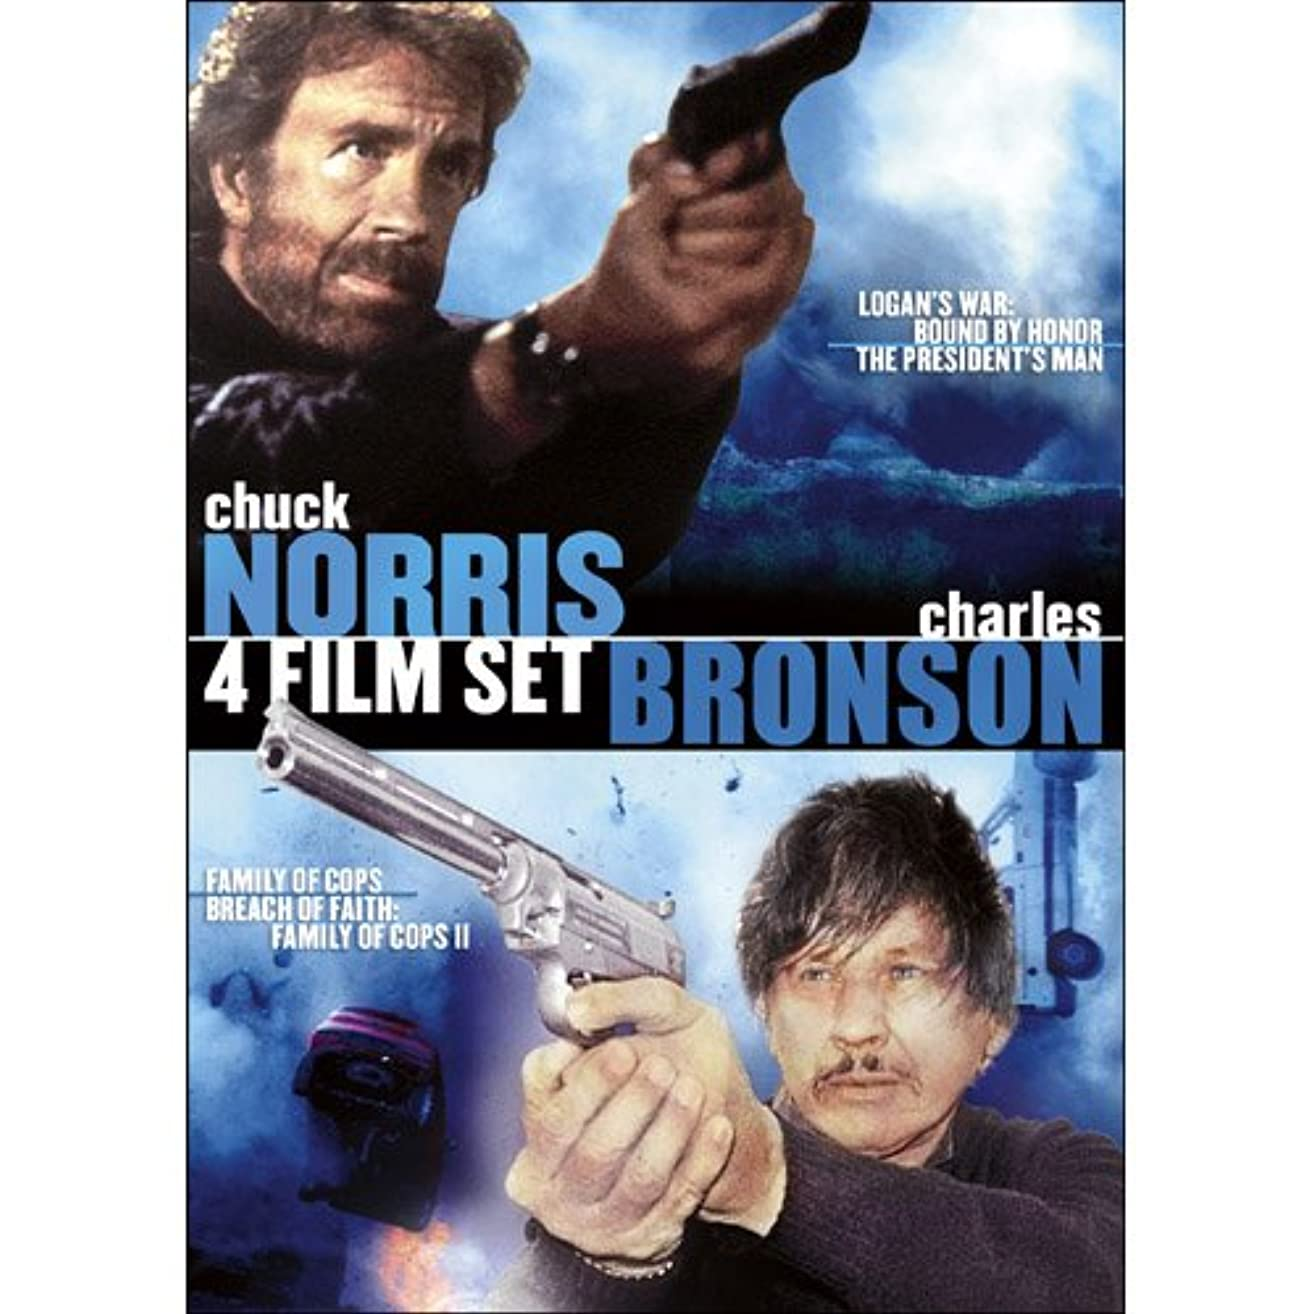 Charles Bronson & Chuck Norris 4 Film Set: Logan's War: Bound By Honor / The President's Man / Family of Cops / Breach of Faith: A Family of Cops II